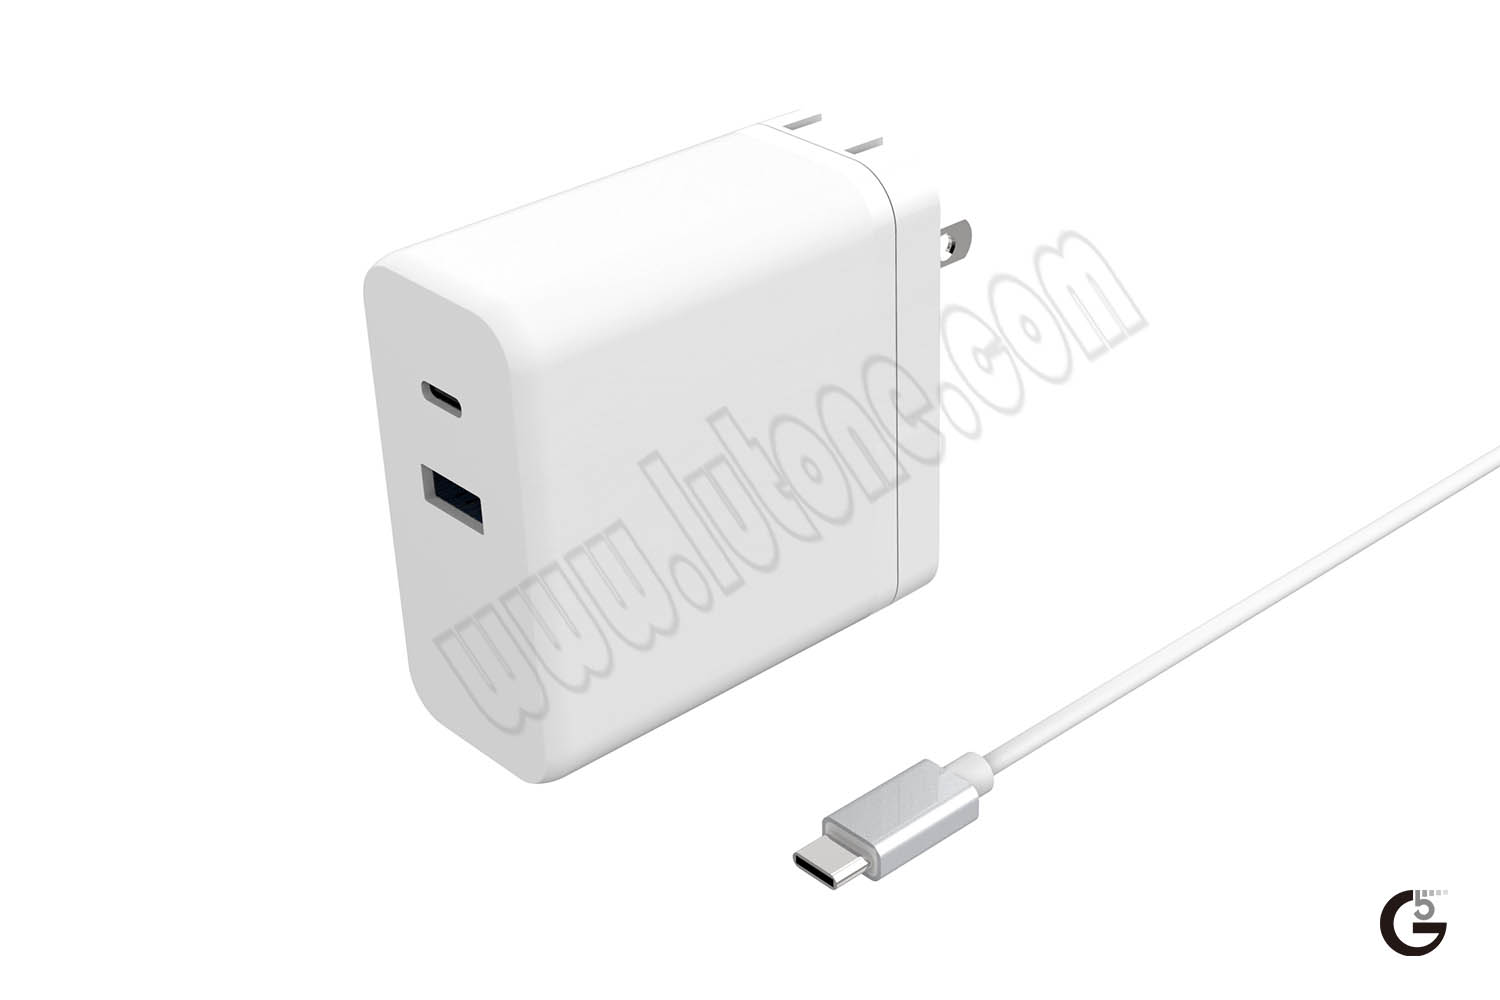 65W USB-C PD Foldable Charger